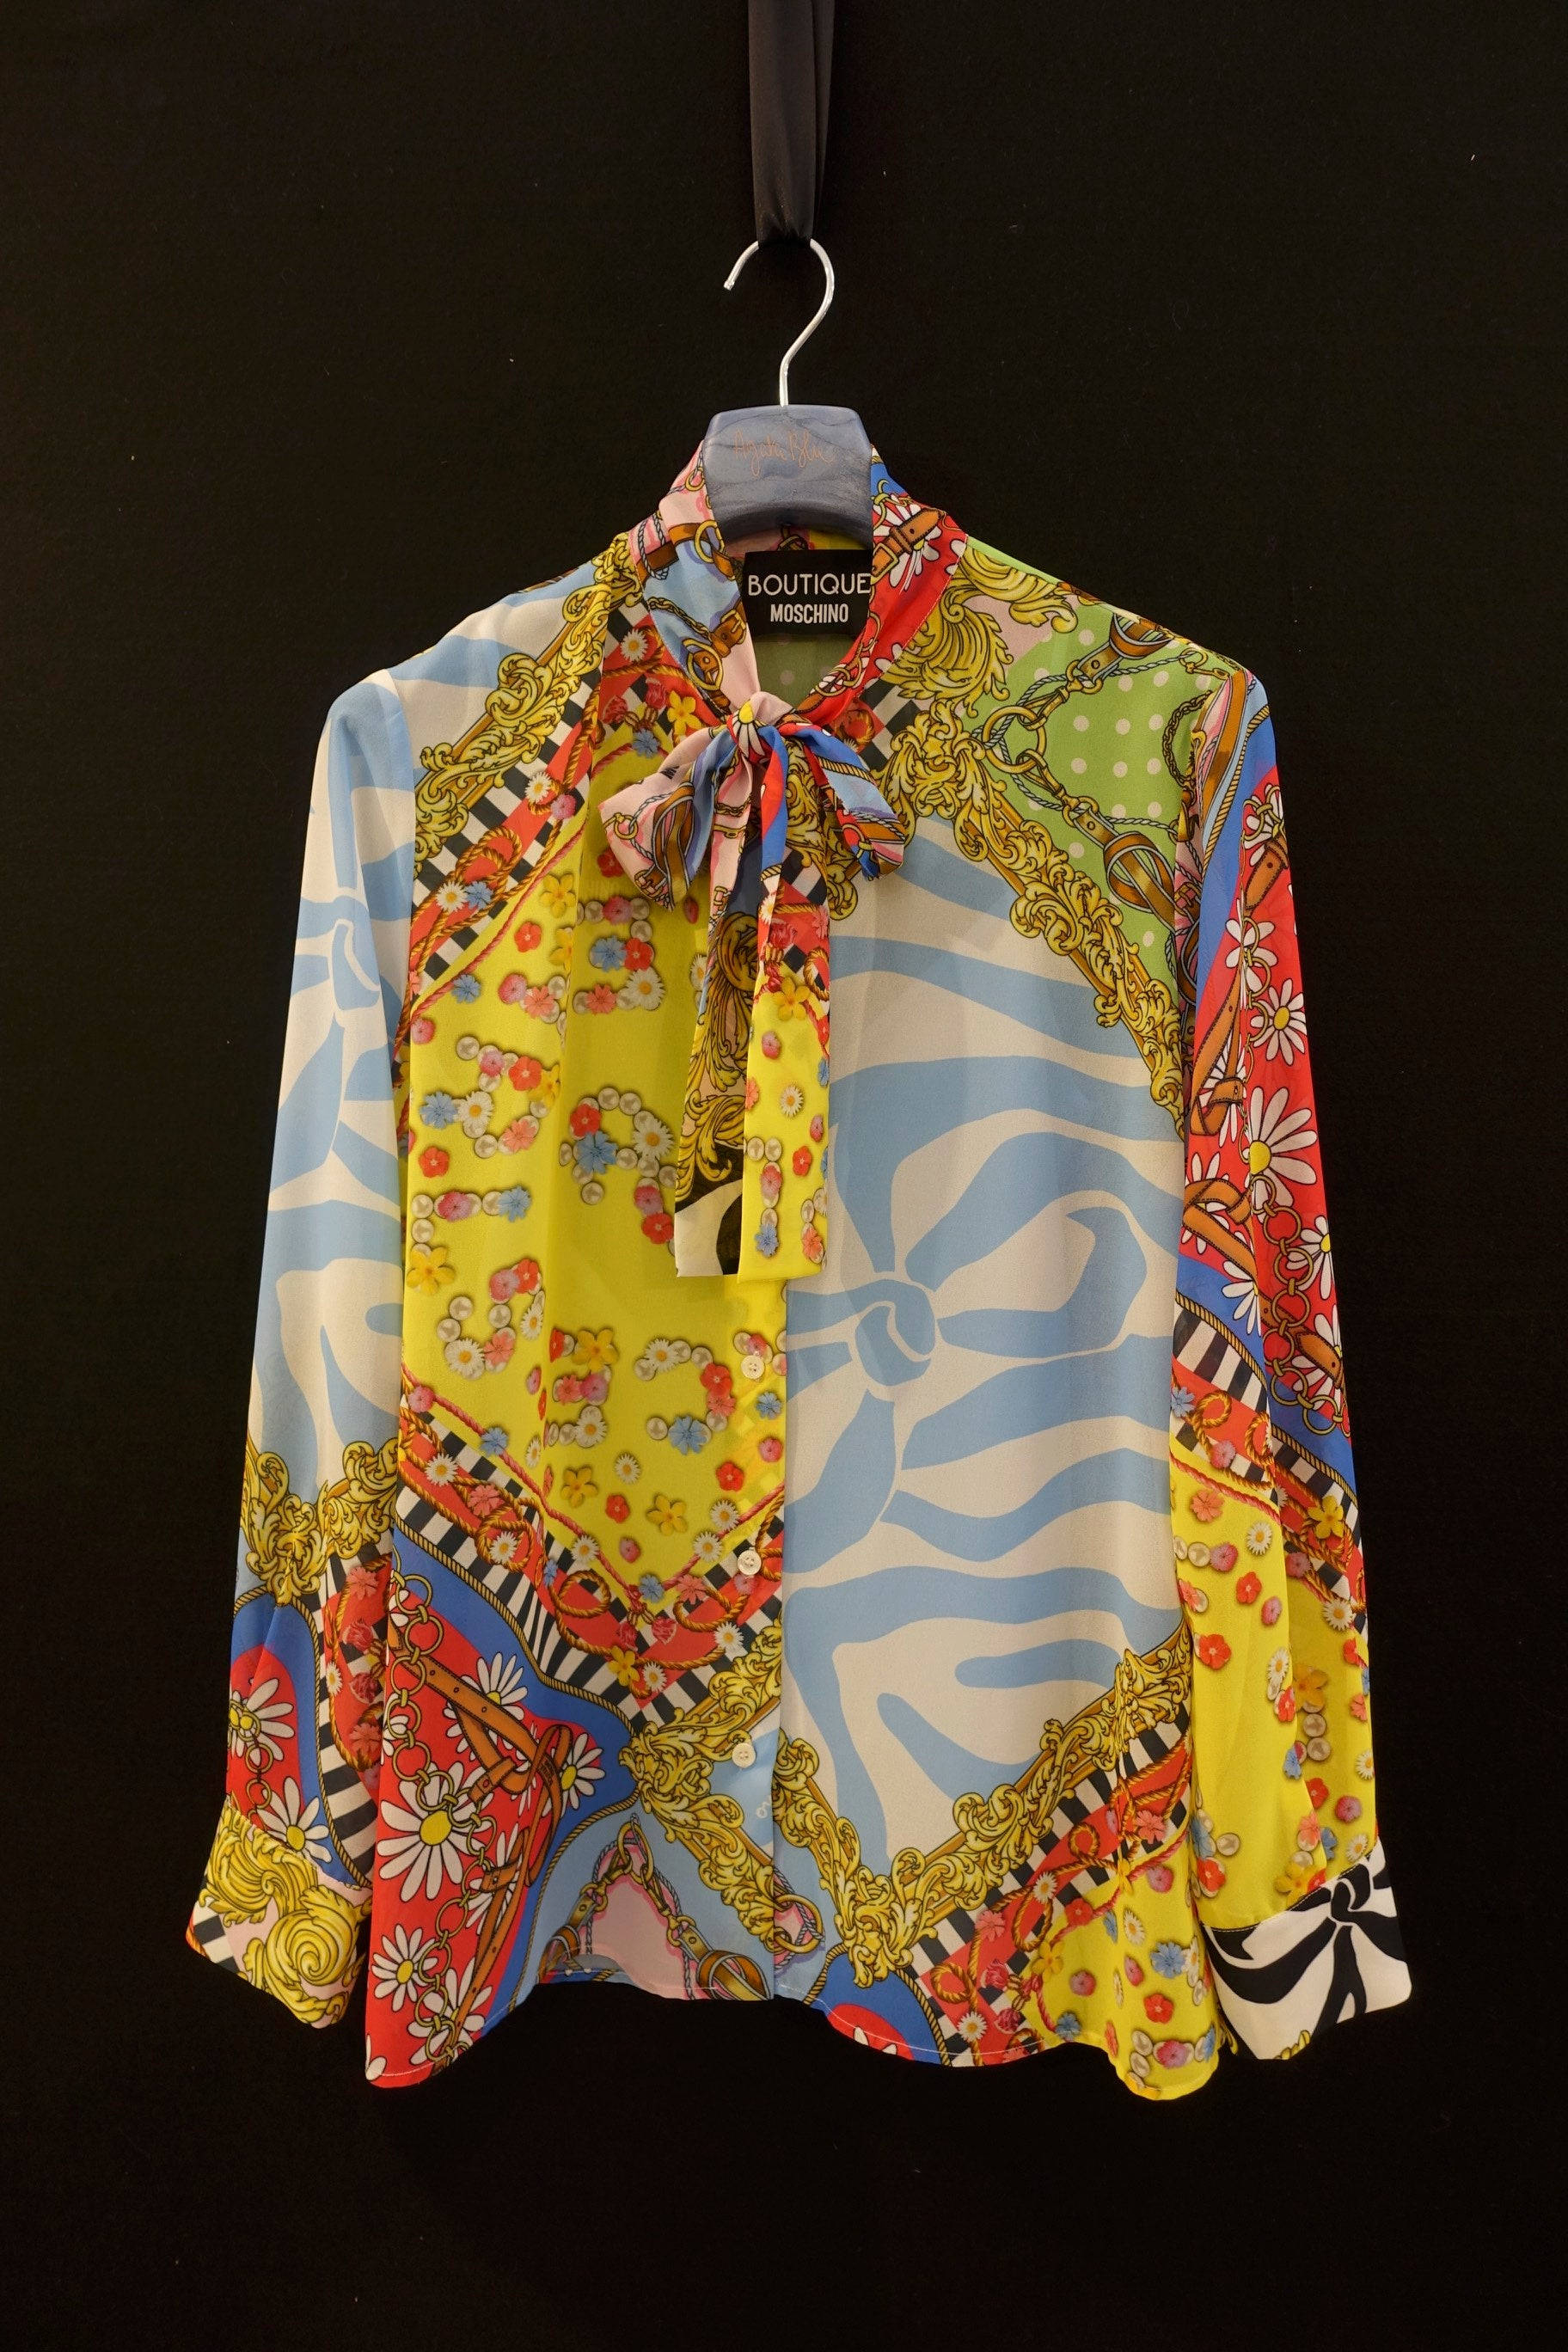 Camicia Boutique Moschino